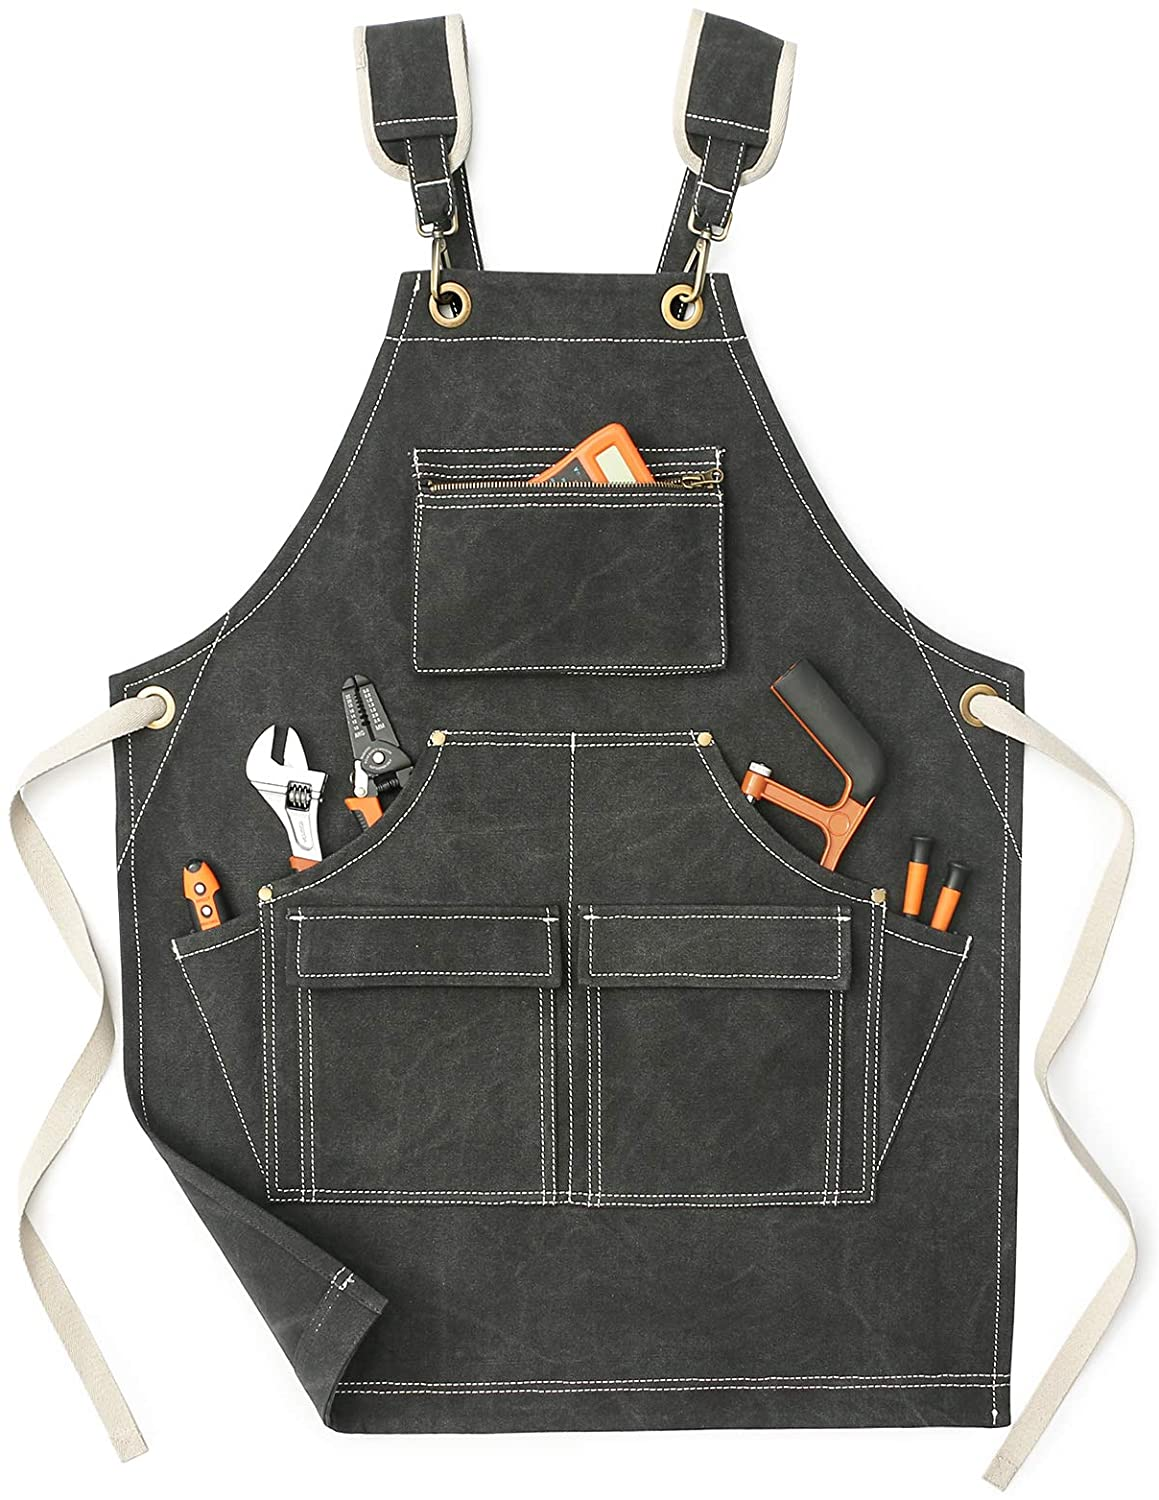 Jeanerlor - Waterproof Special Washing Style Canvas Men's Woodworking Work Apron with Pockets for Eork(Dark Grey)